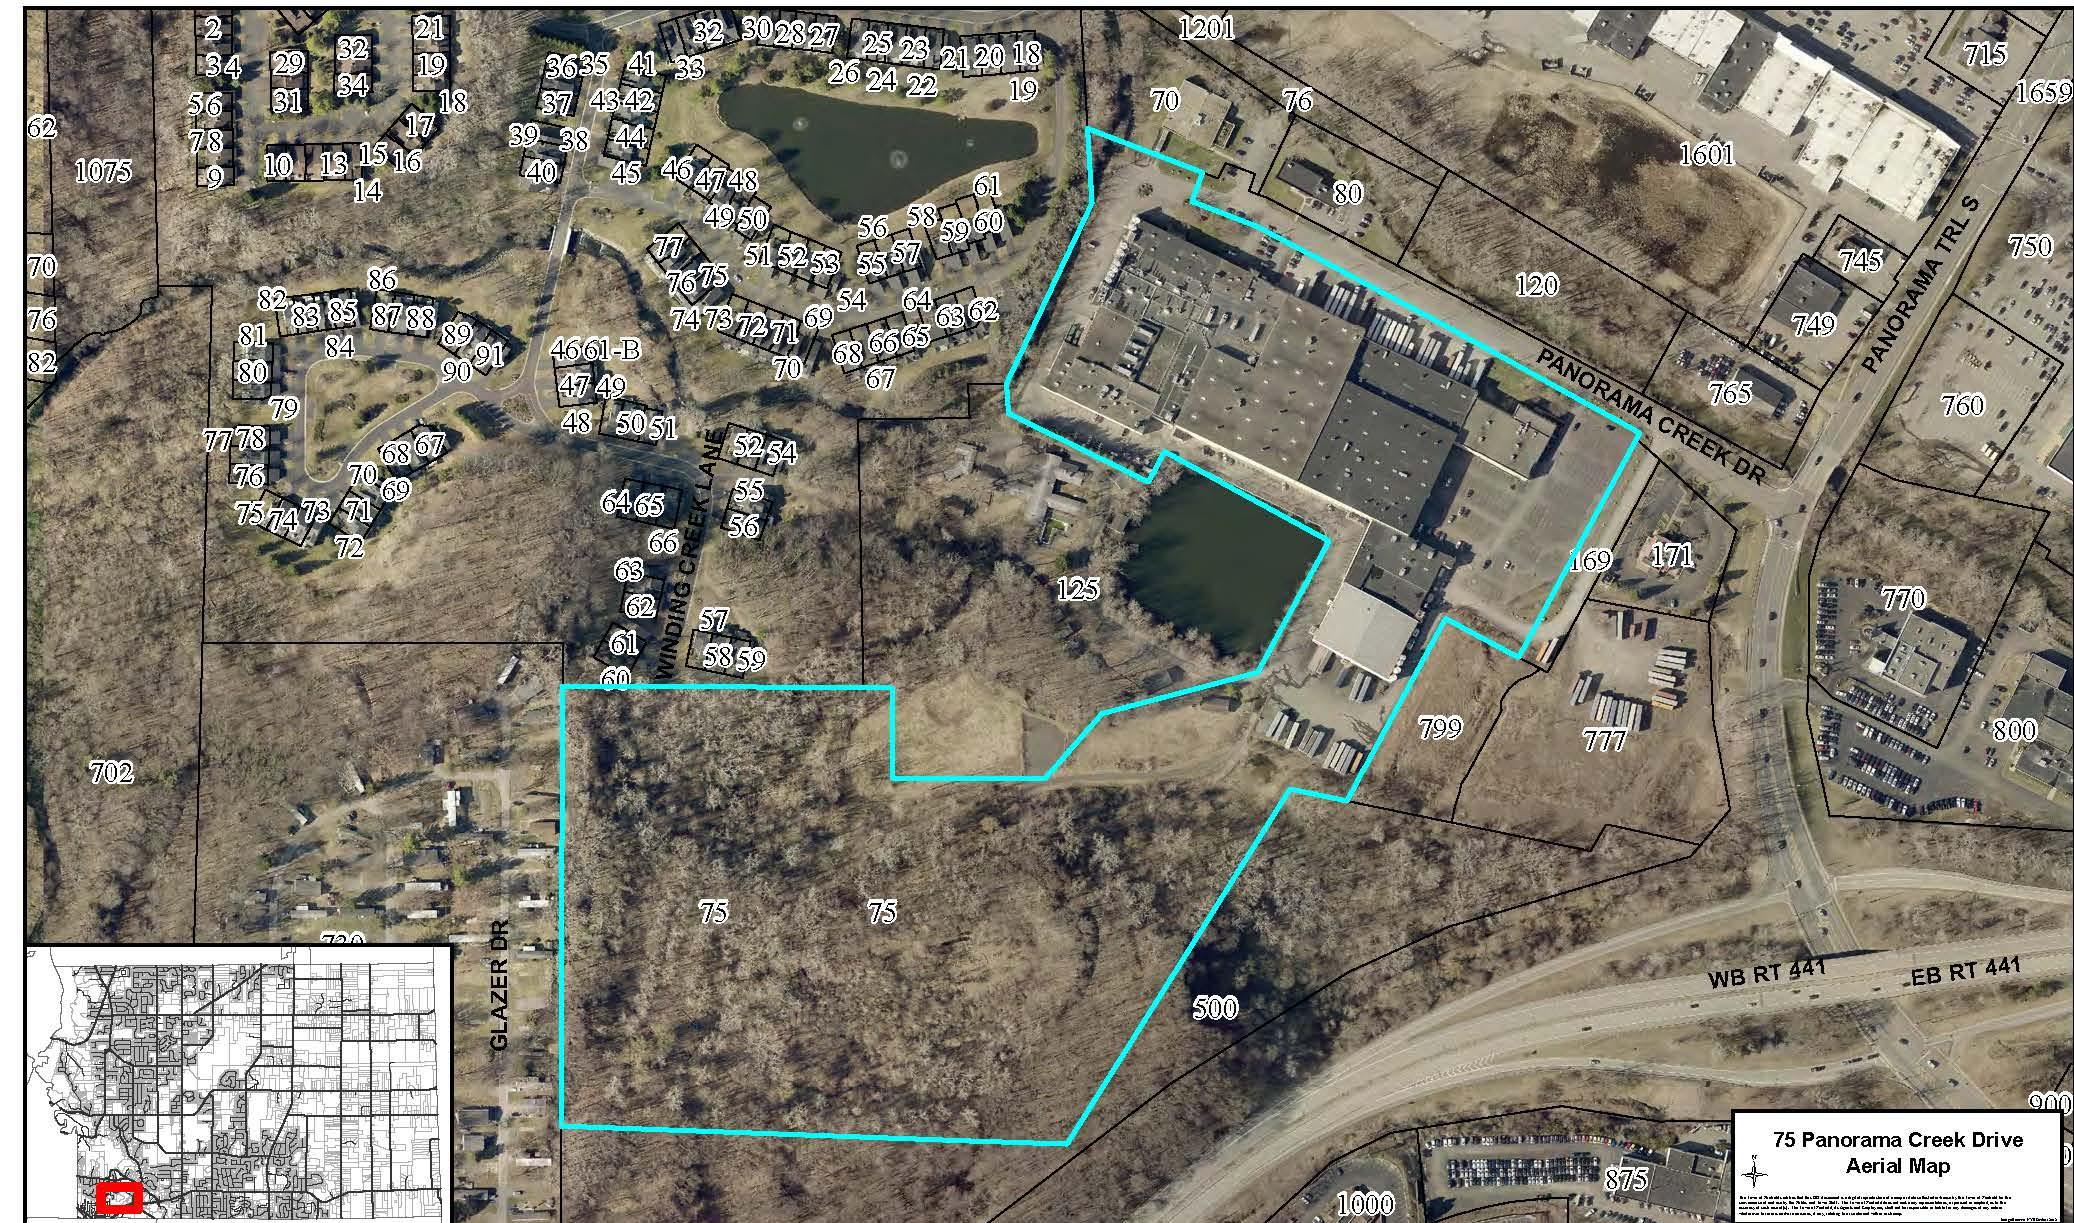 Application - 21Z-0008- 75 Panorama Creek Drive aerial - Copy